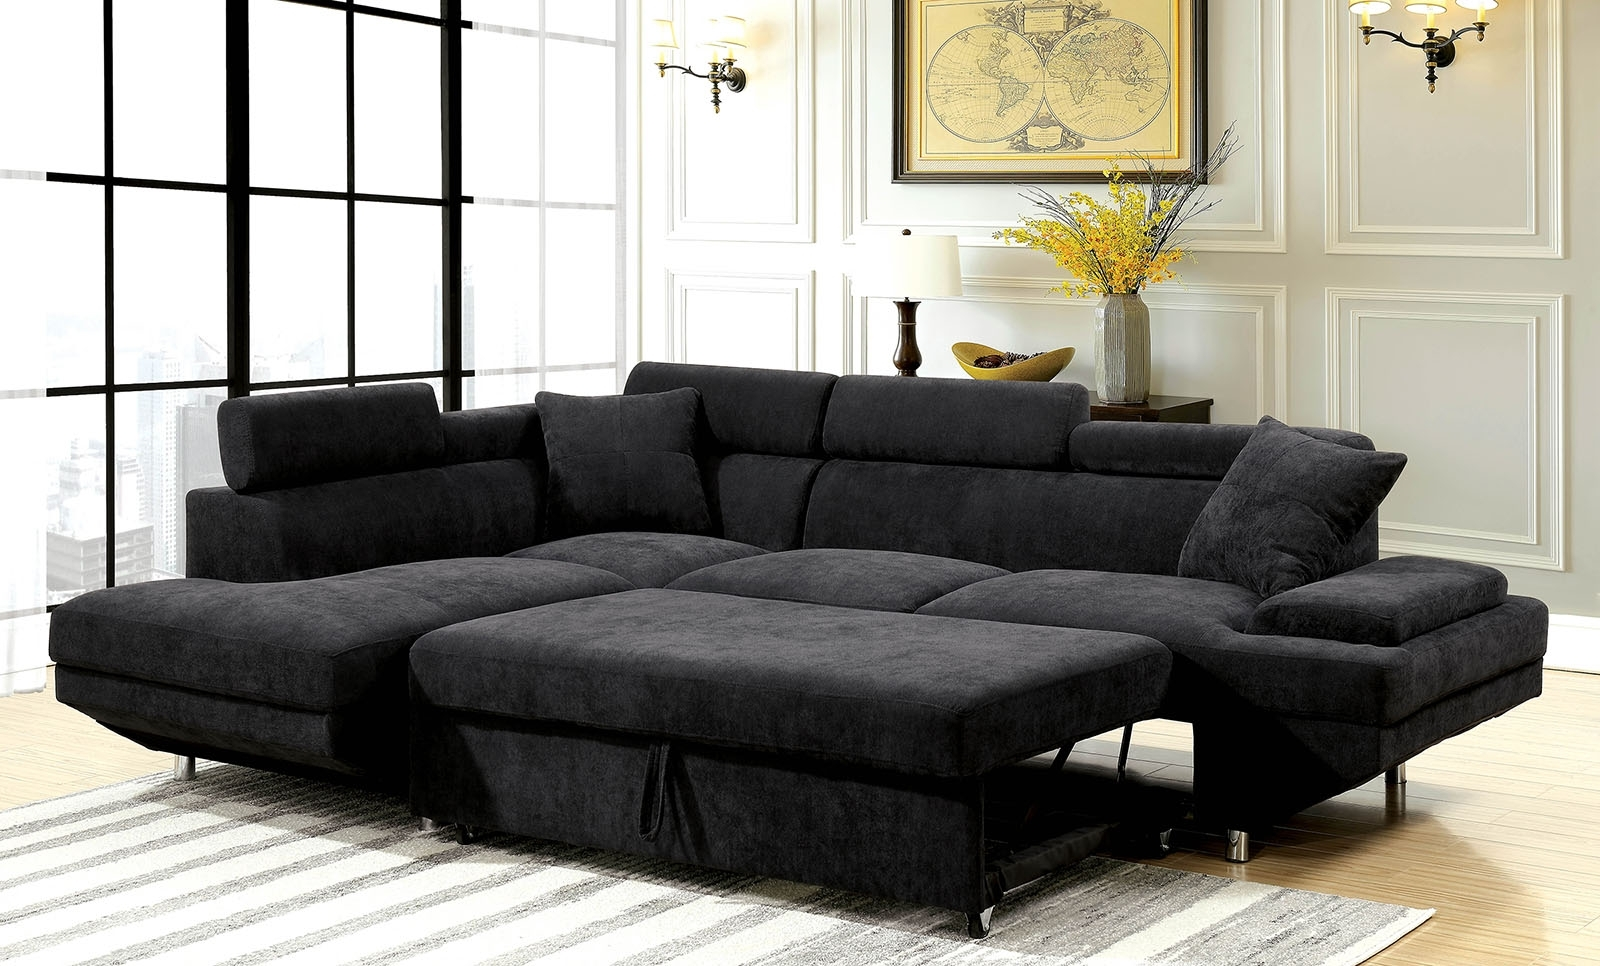 Trendy Adjustable Sectional Sofas With Queen Bed For Foreman Black Flannelette Fabric Sectional With Pull Out Bed (View 6 of 20)